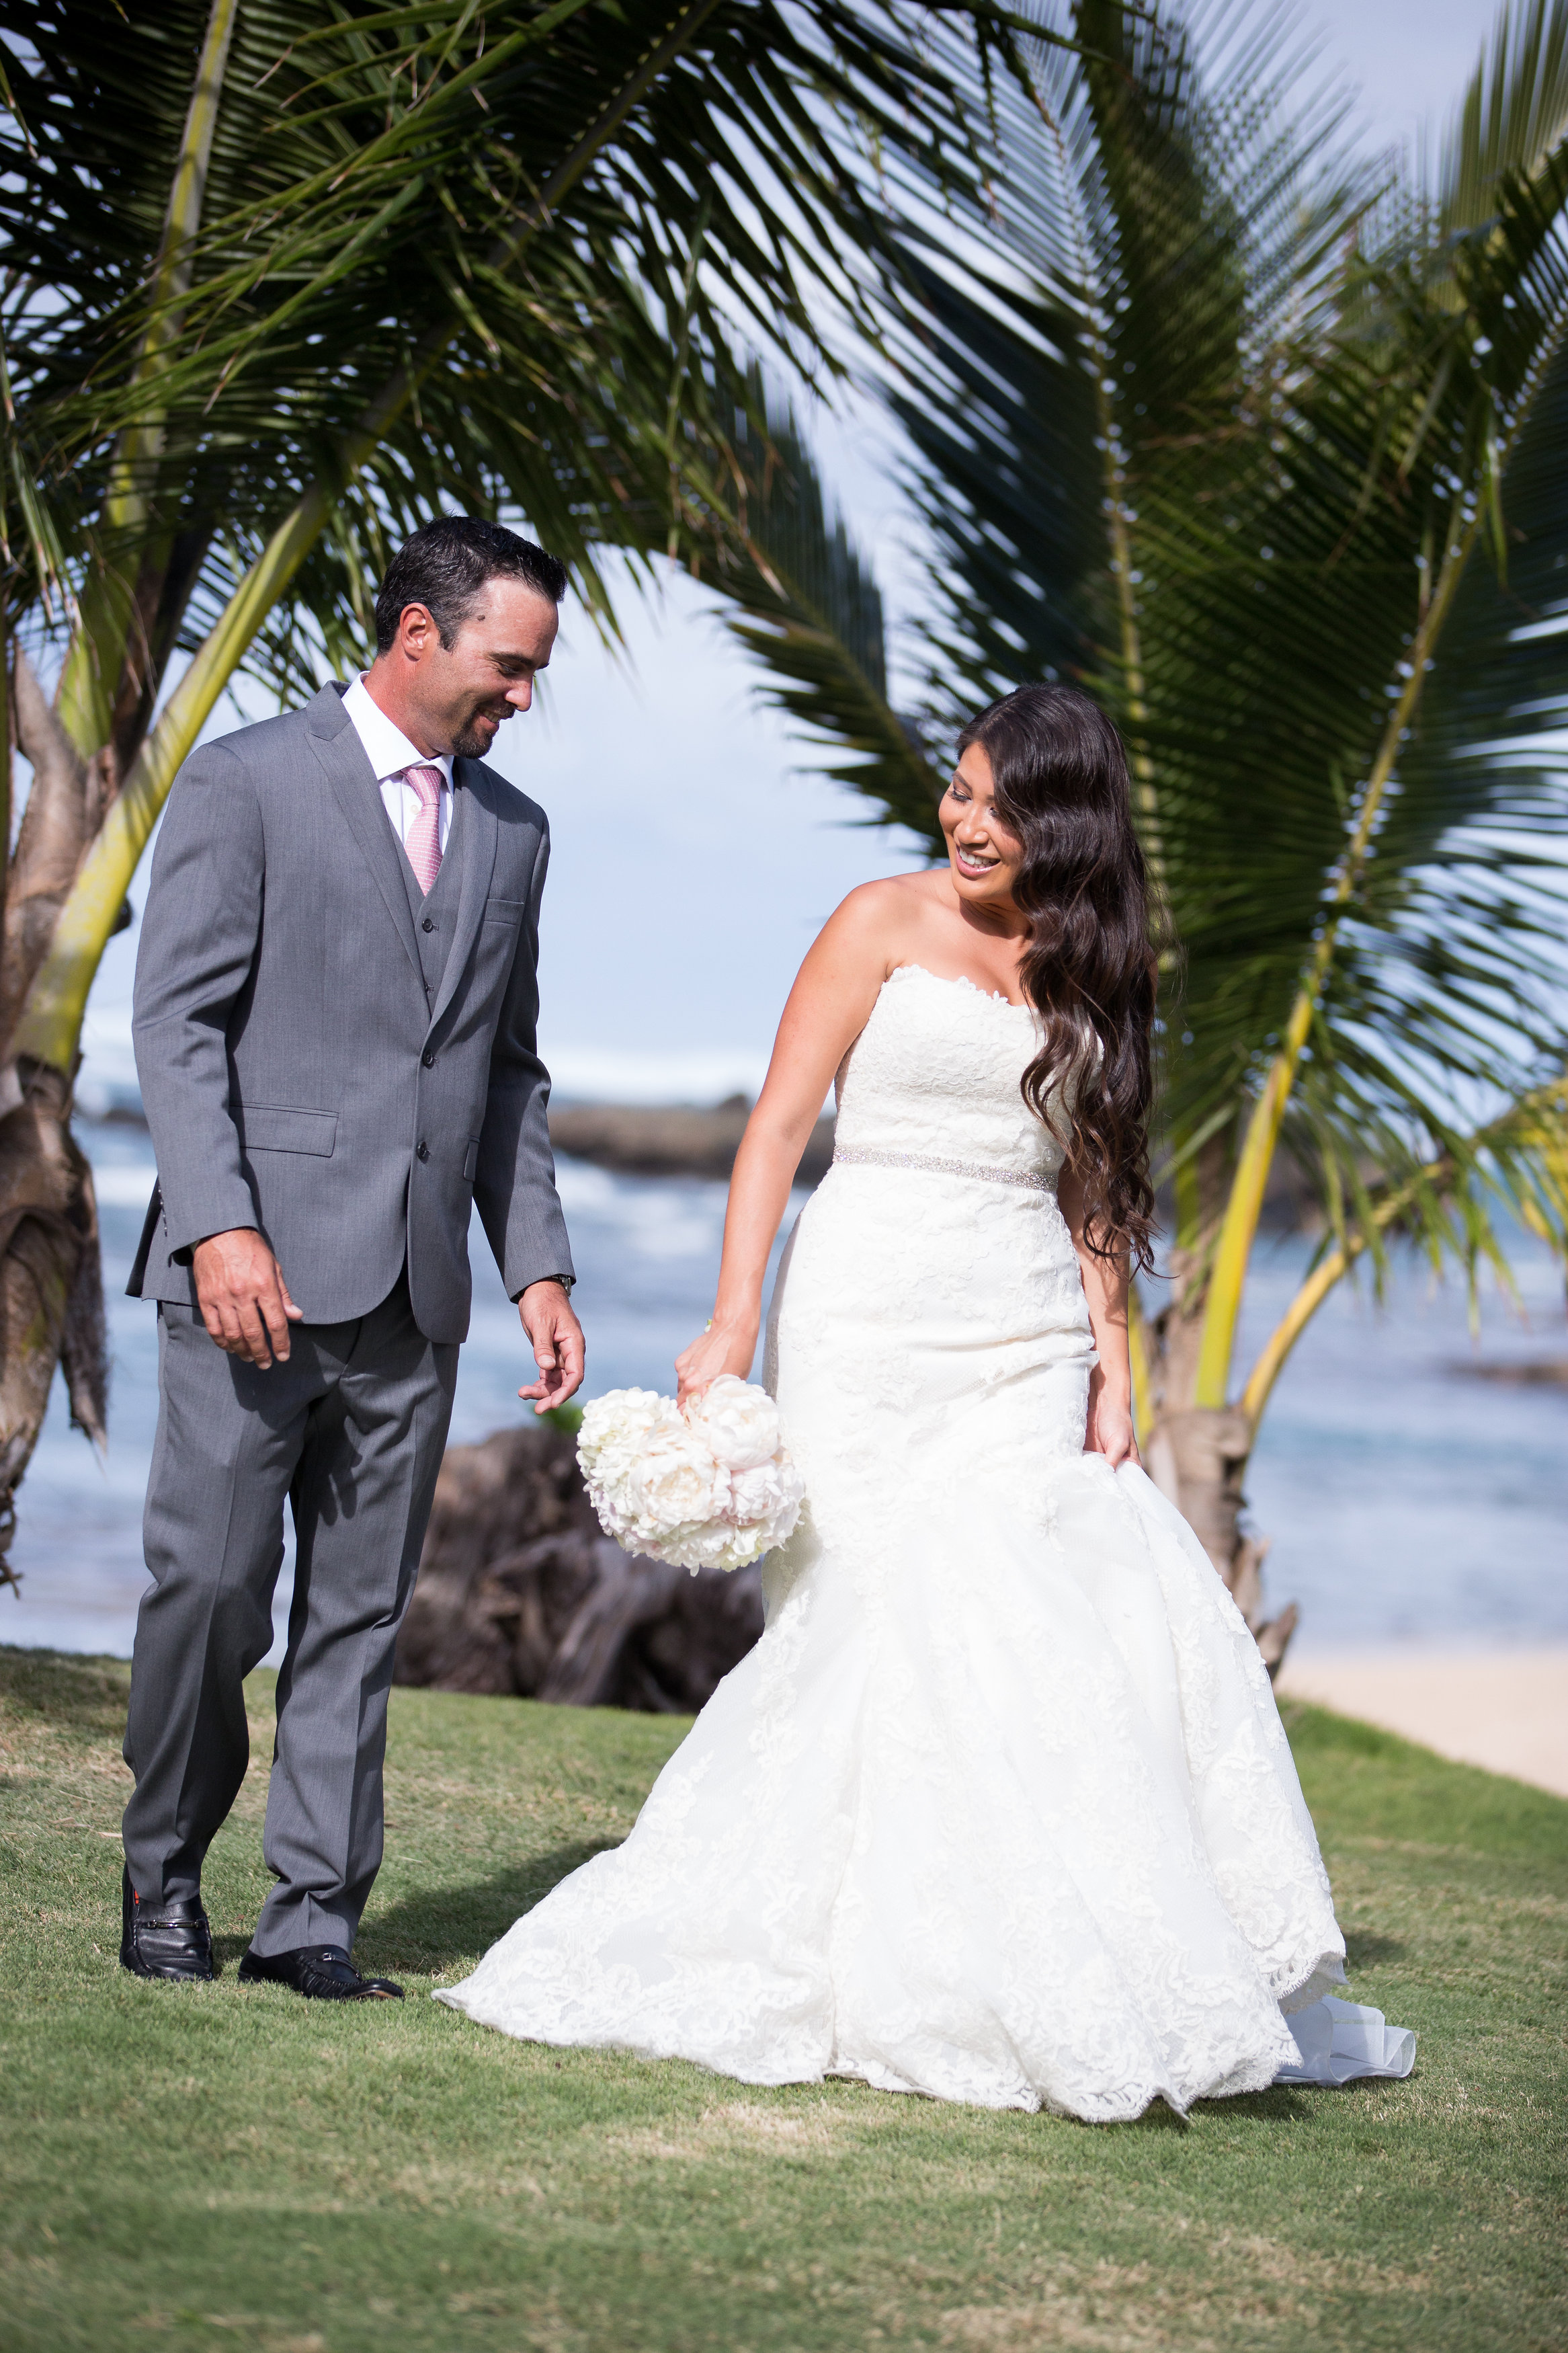 david kim photography oahu wedding 2.jpg